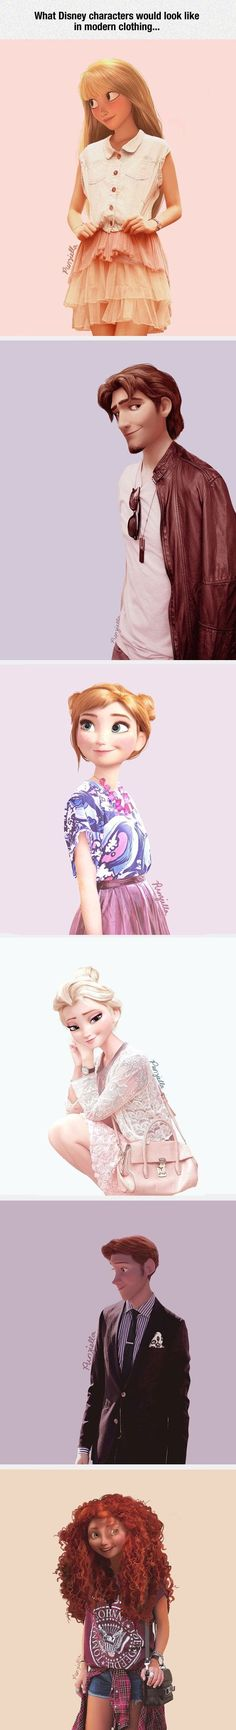 If Disney characters wore modern clothing - Cute, but Rapunzel just doesn't look right with bangs. Also if Rapunzel had bangs, wouldn't they have turned brown? Disney Pixar, Walt Disney, Cute Disney, Disney And Dreamworks, Disney Magic, Humour Disney, Funny Disney Memes, Disney Jokes, Funny Memes